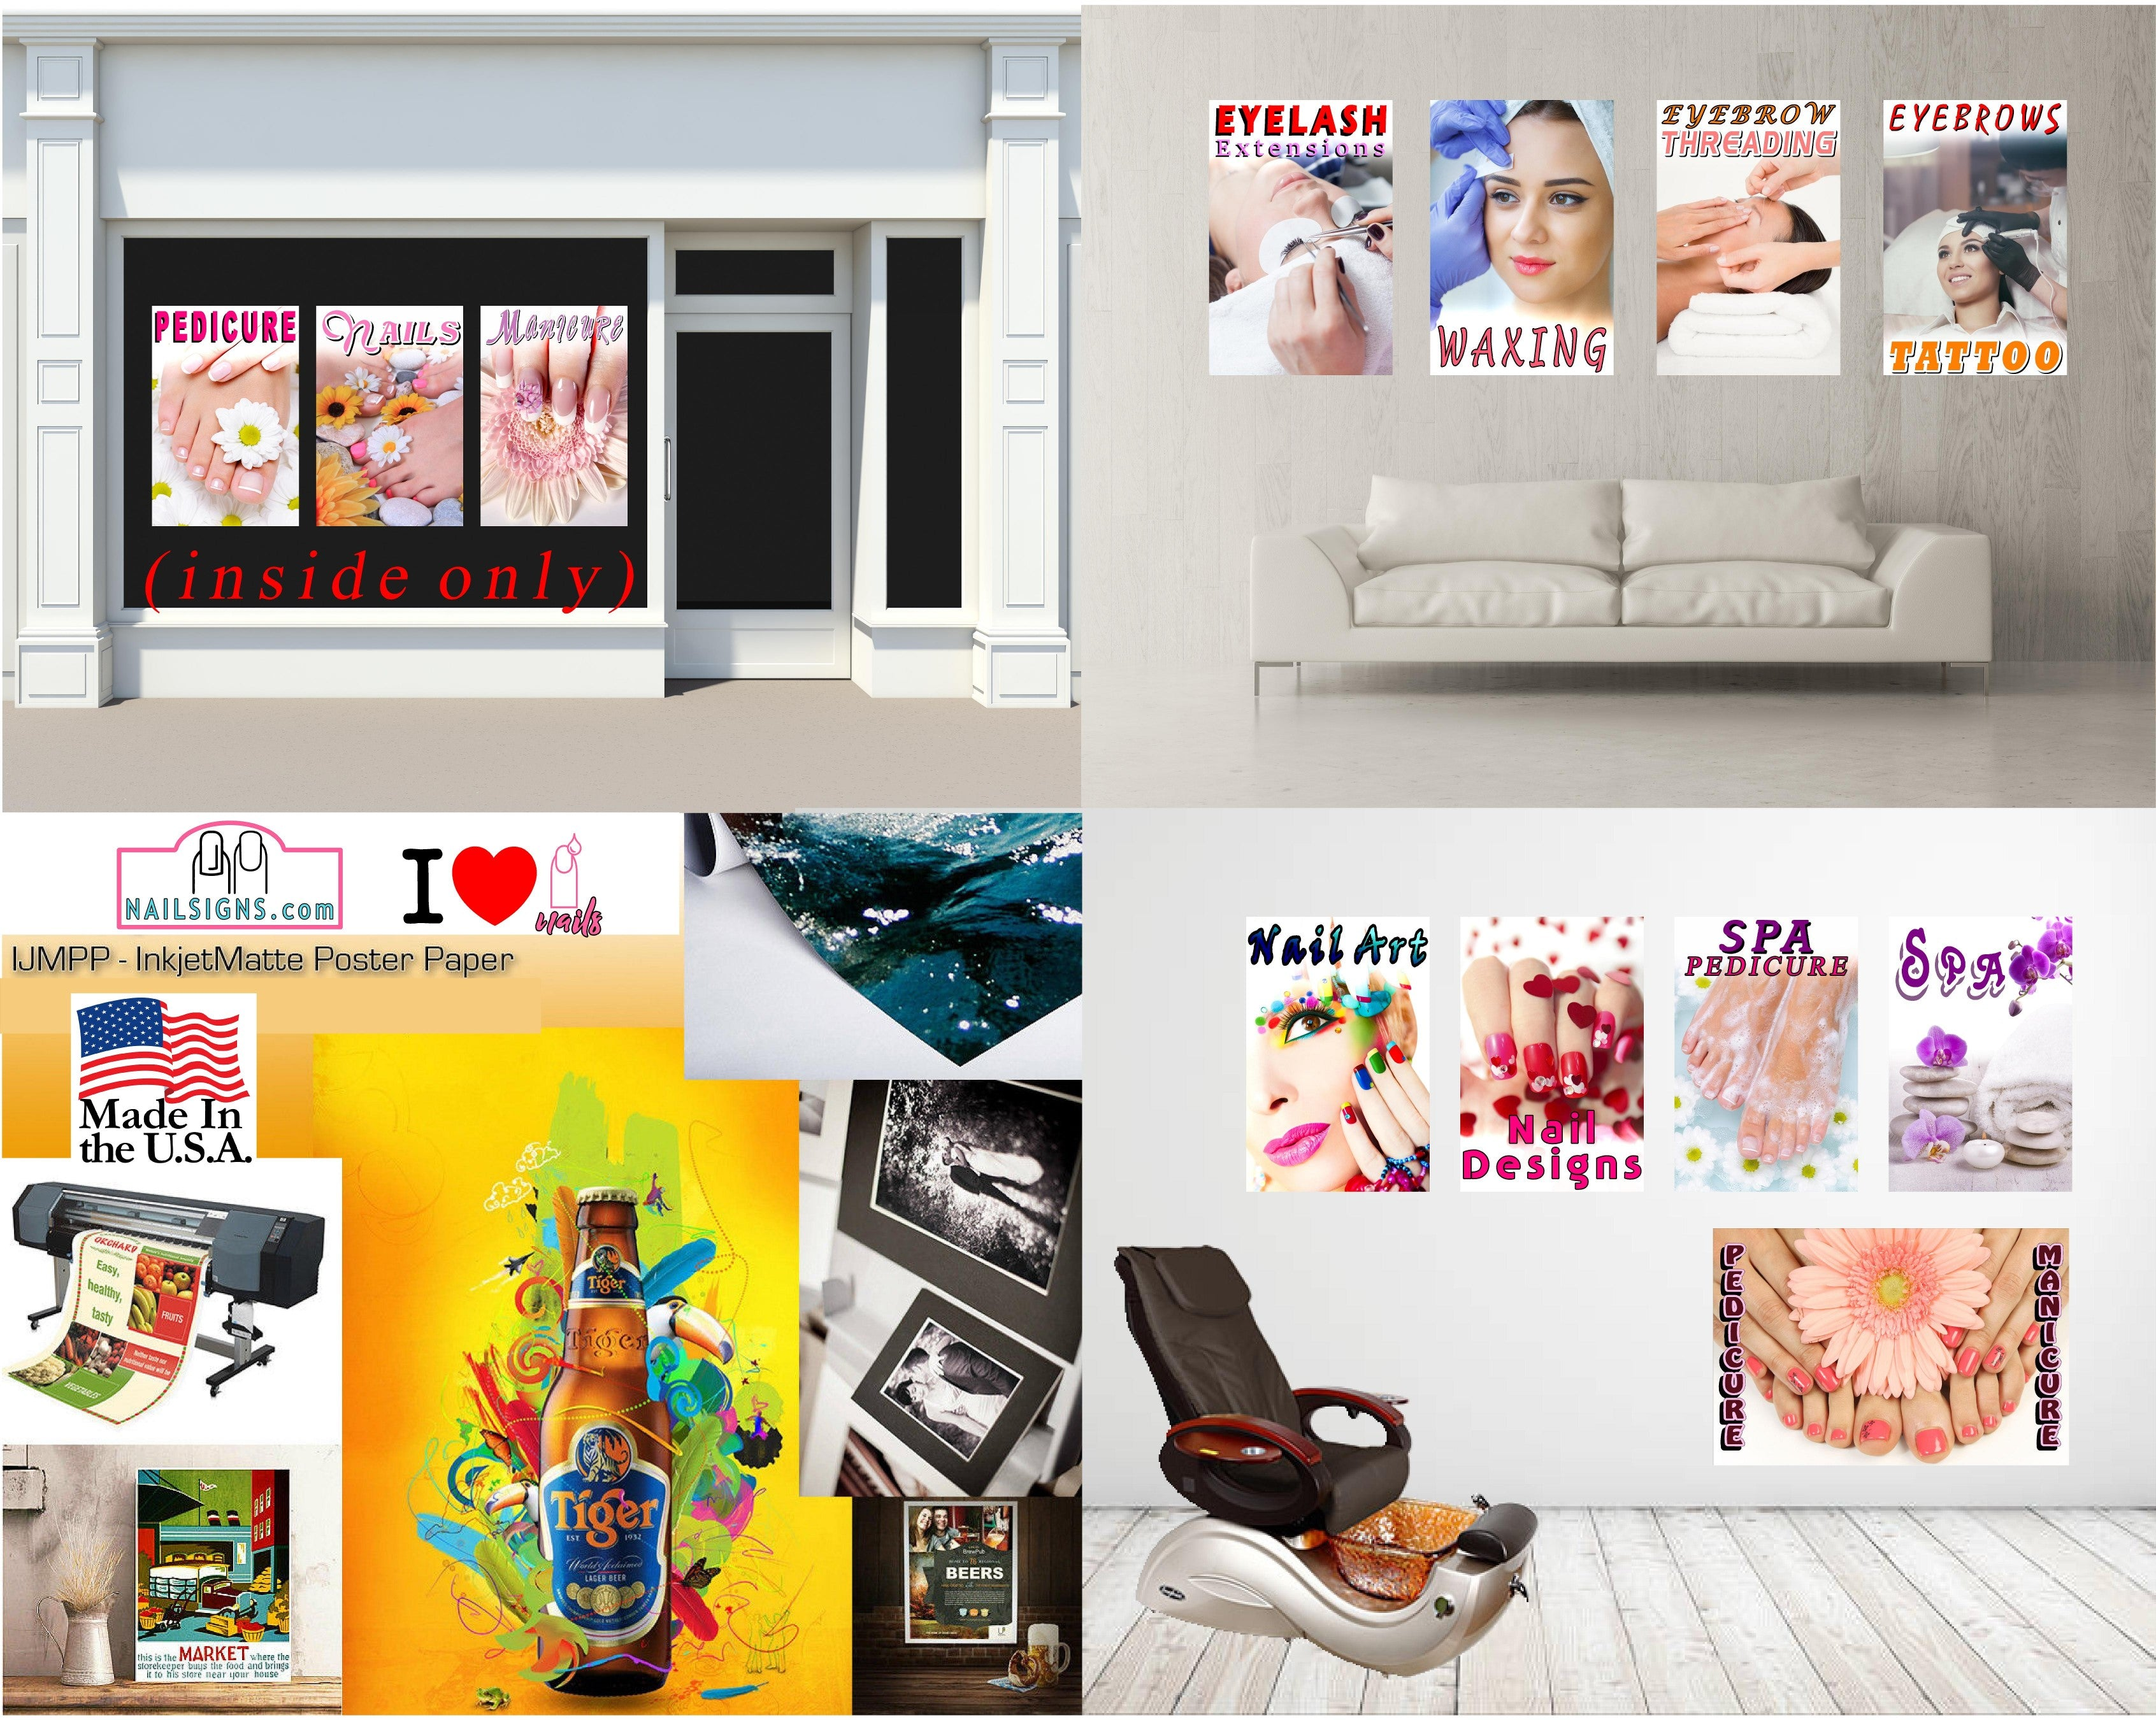 Nail Art 02 Photo-Realistic Paper Poster Premium Matte Interior Inside Sign Advertising Marketing Wall Window Non-Laminated Vertical